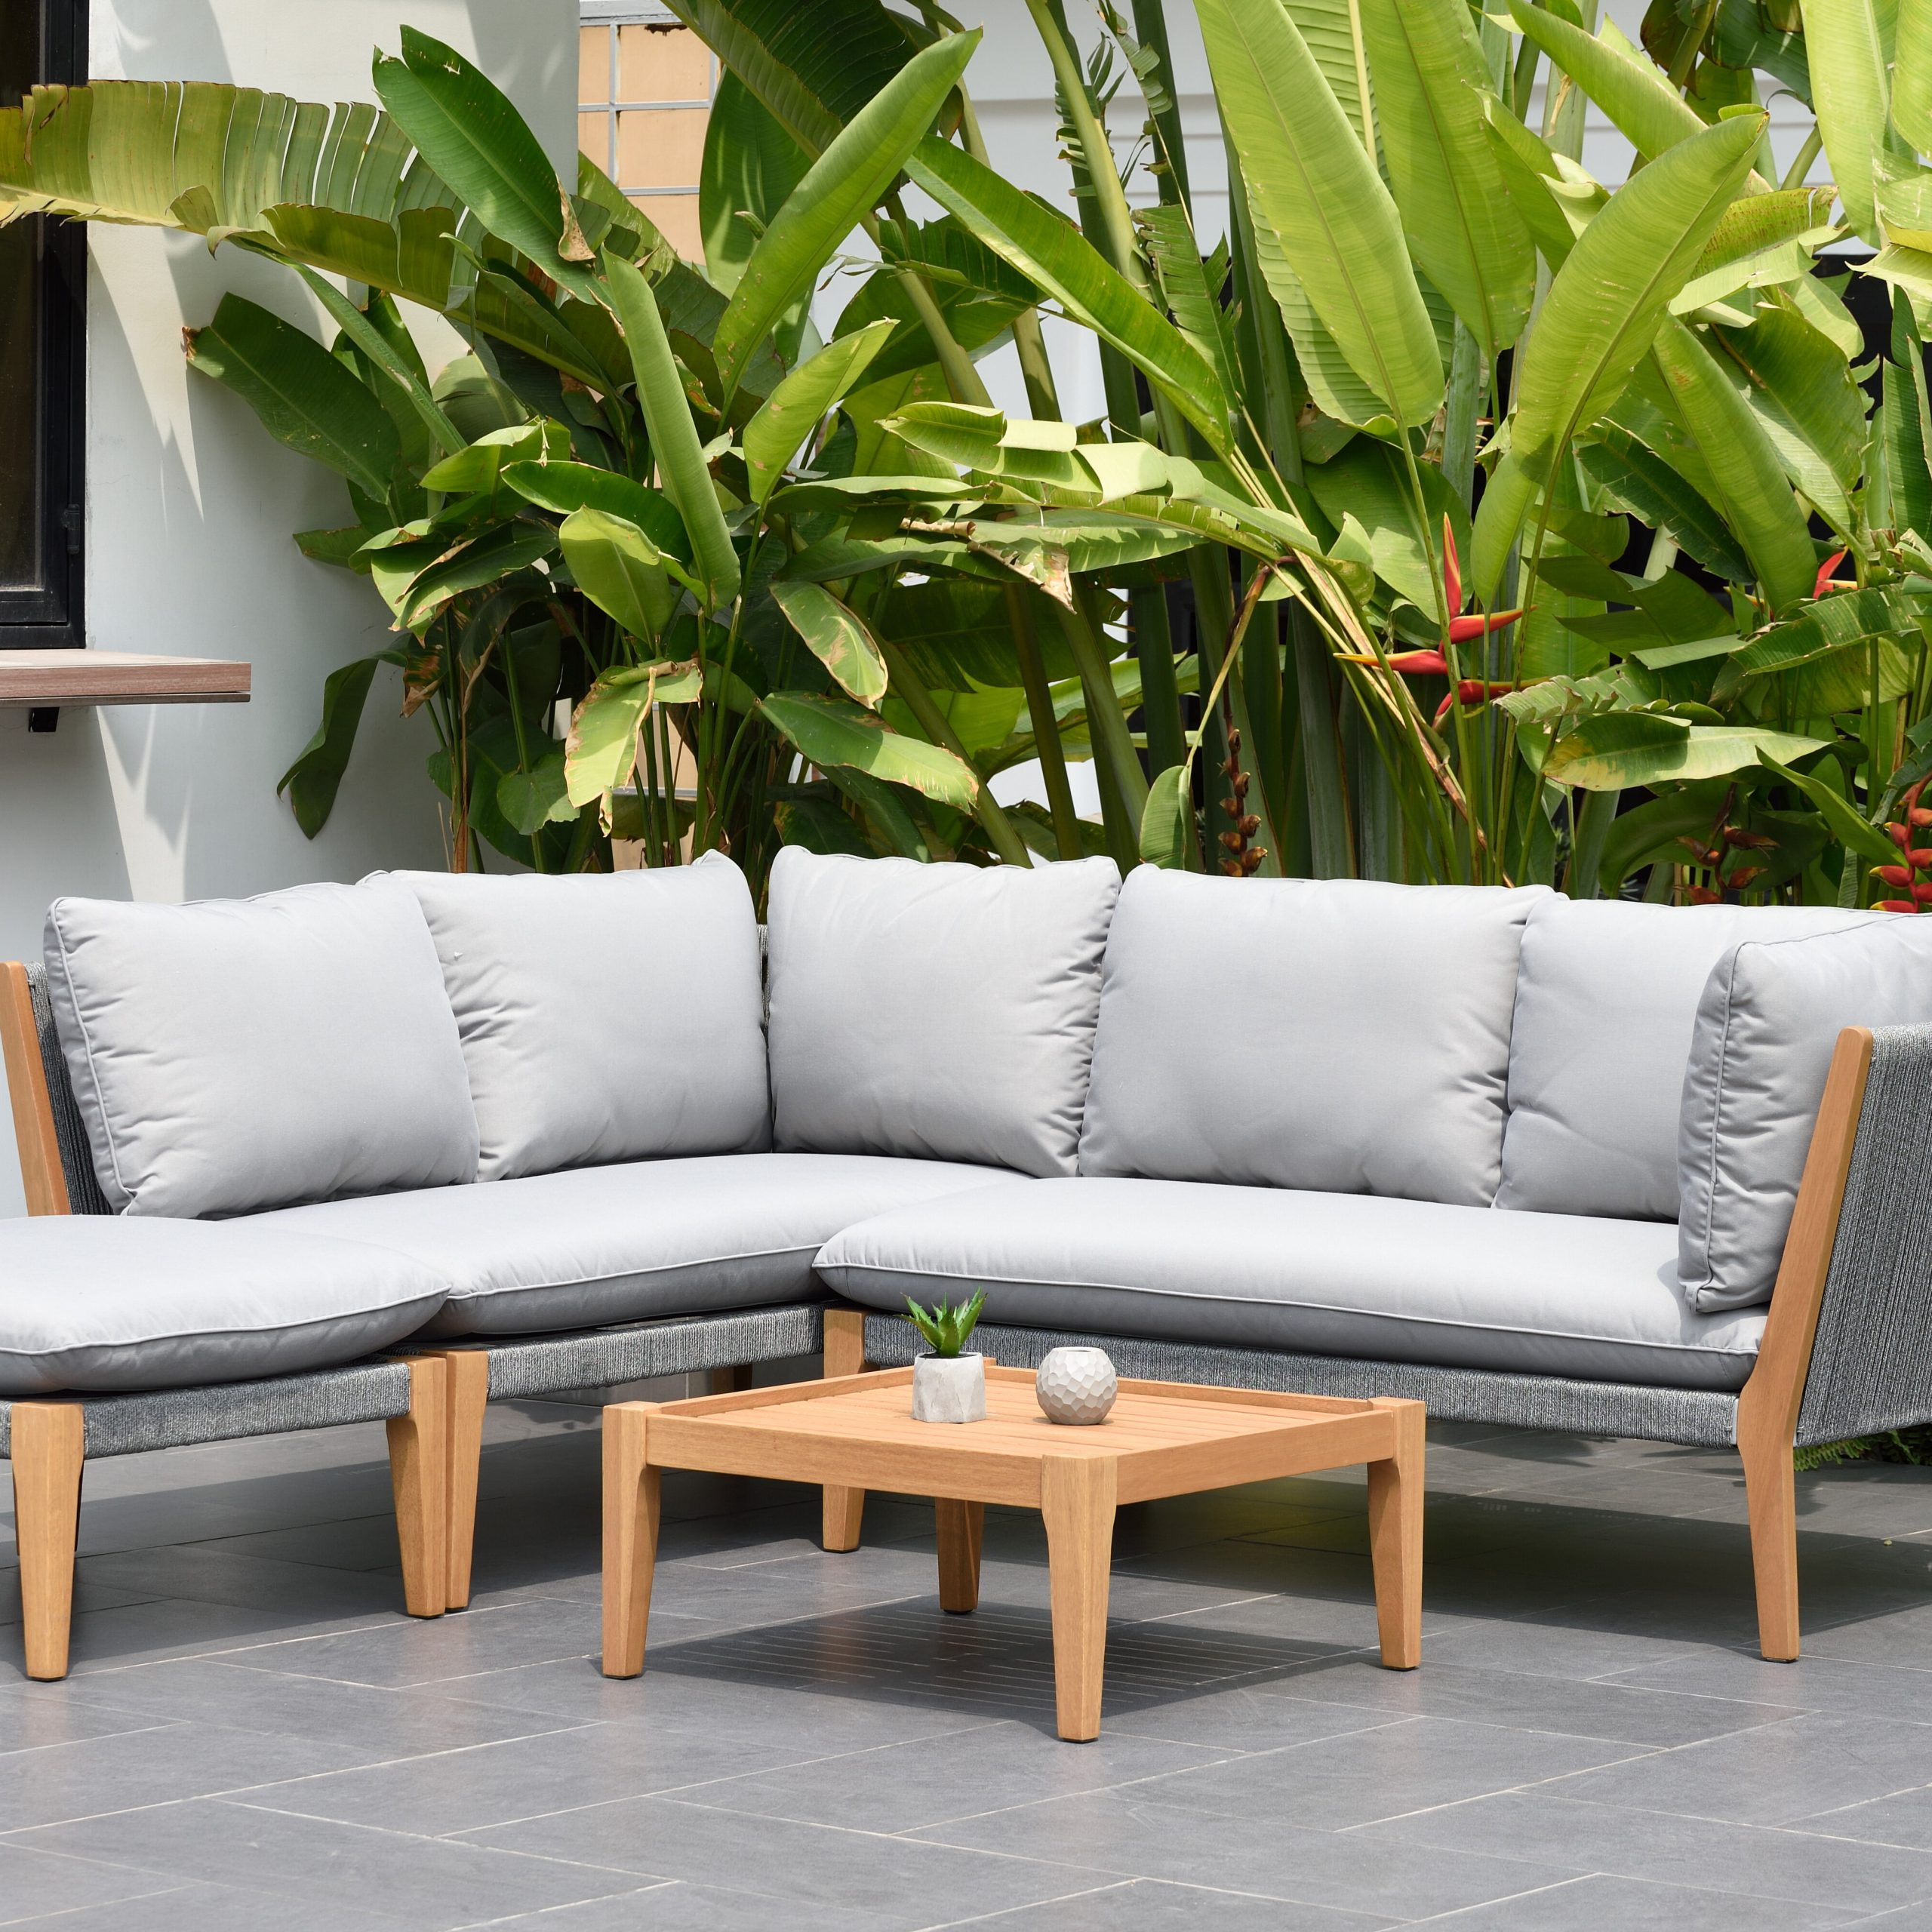 Best And Newest Olinda 4 Piece Teak Sectional Seating Group With Cushions With Olinda 3 Piece Sectionals Seating Group With Cushions (View 4 of 25)